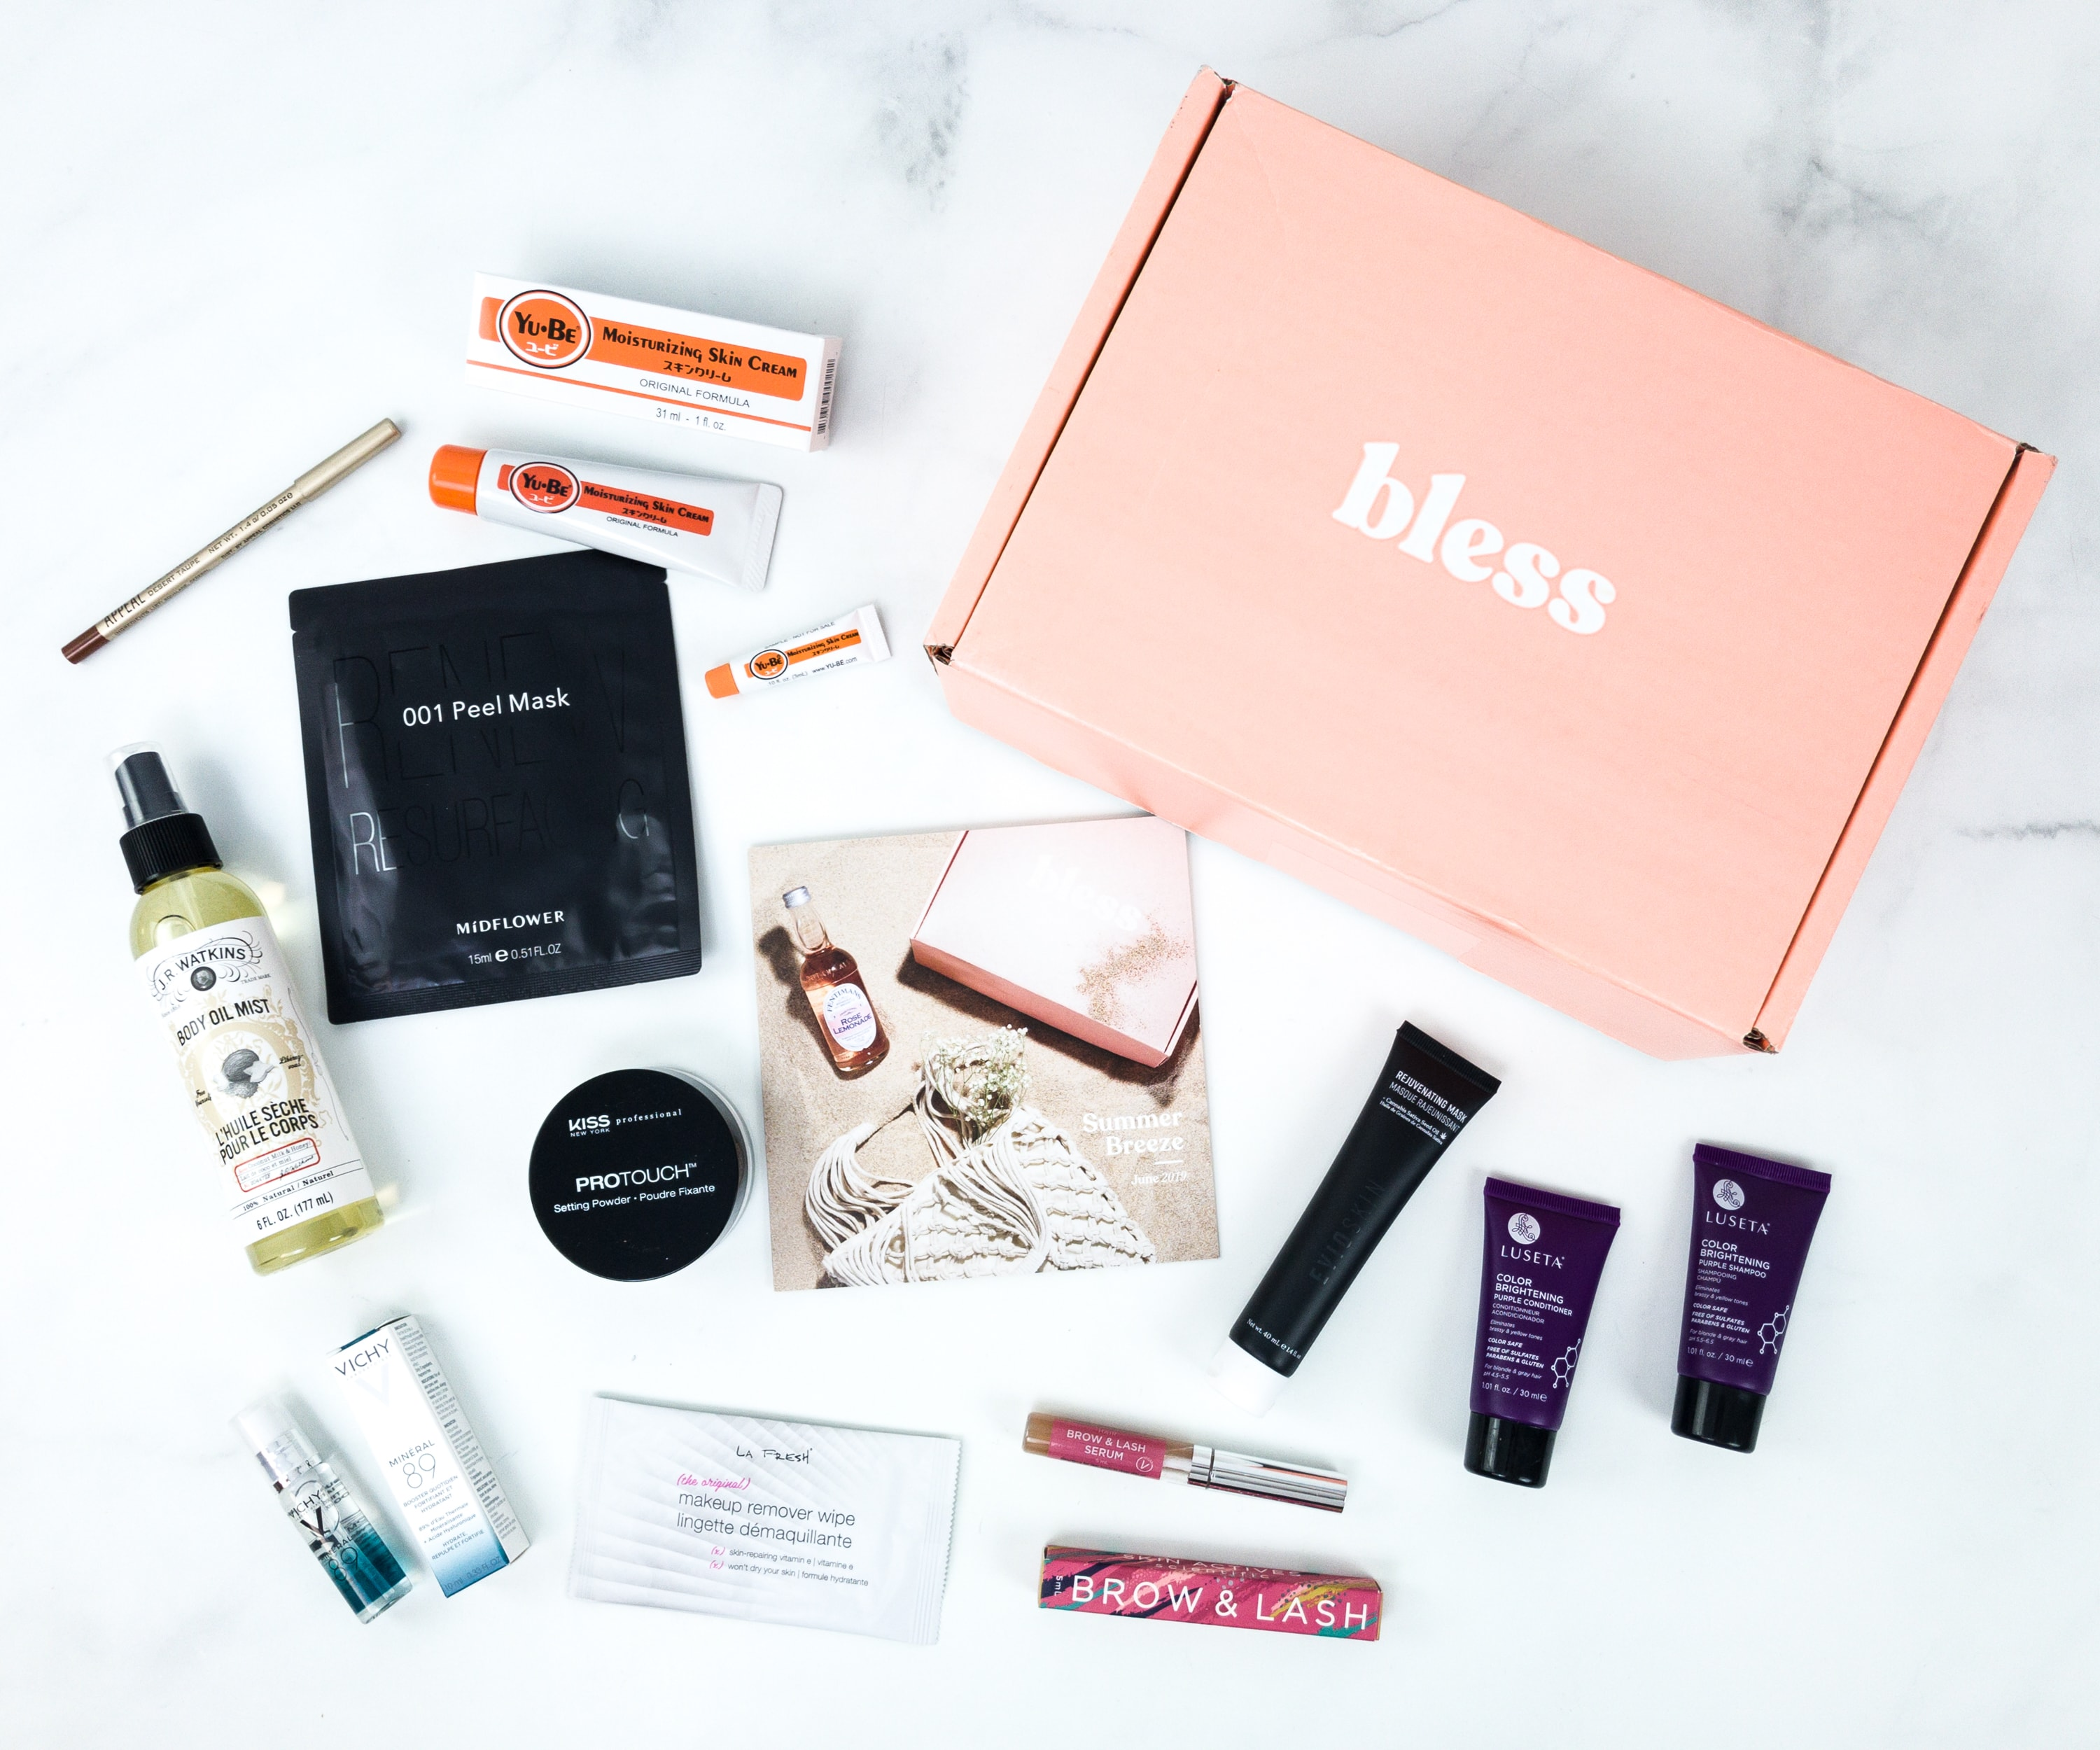 Bless Box June 2019 Subscription Box Review & Coupon